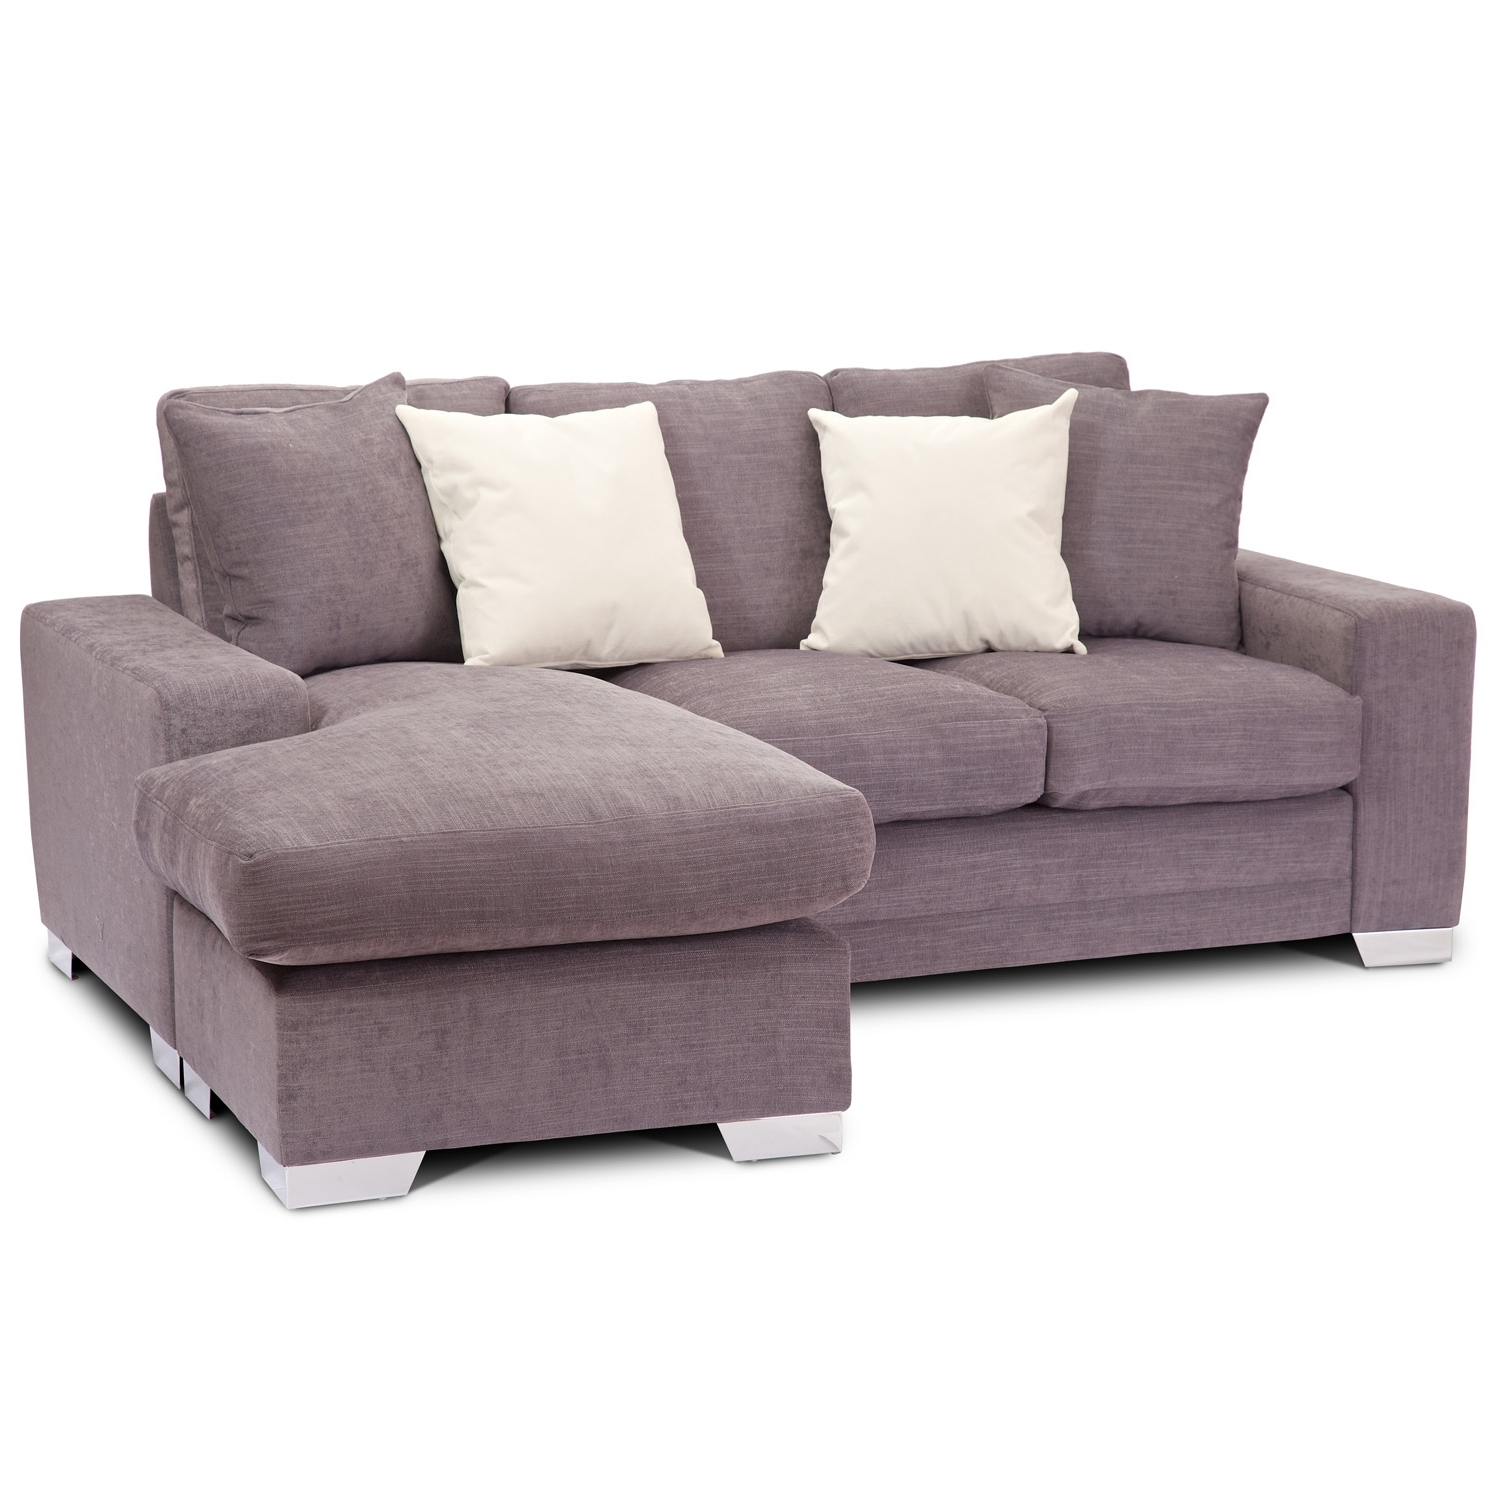 Cheap Futons For Sale Pertaining To Sofa Chaise Convertible Beds (View 3 of 15)